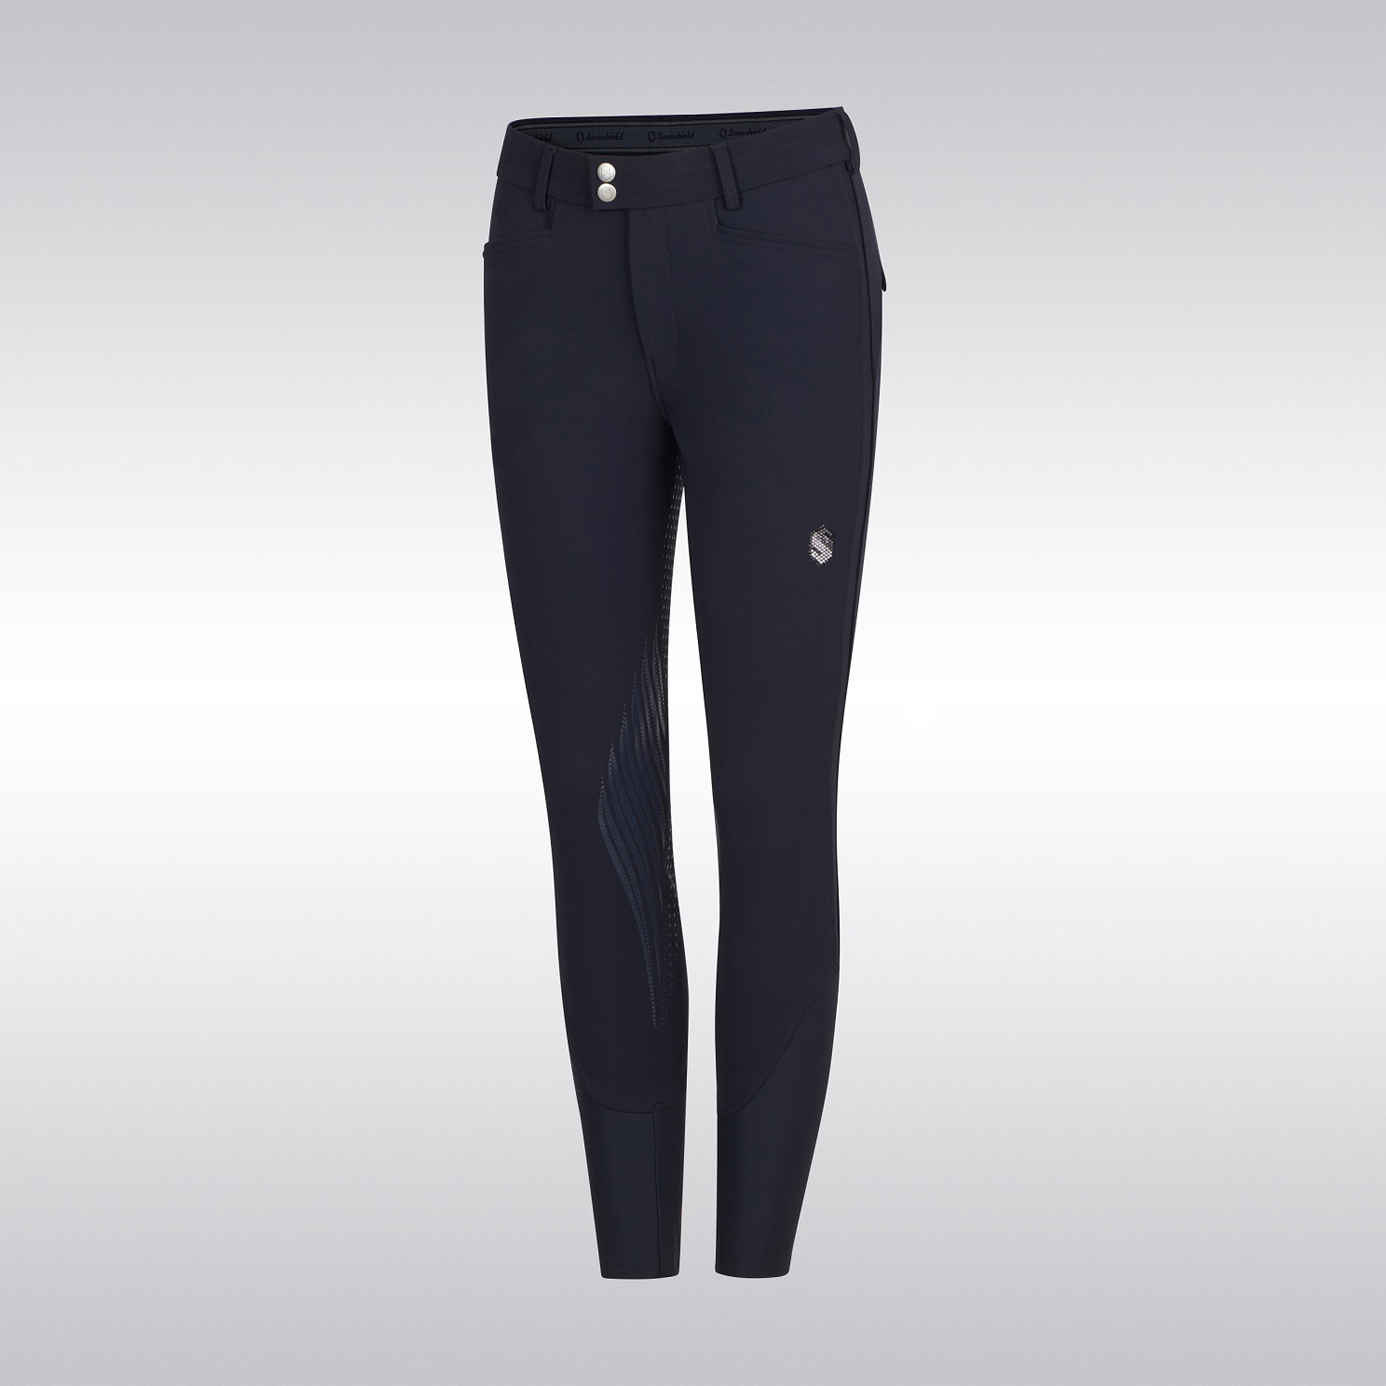 Samshield Astrid Full Grip Navy Ladies Breeches